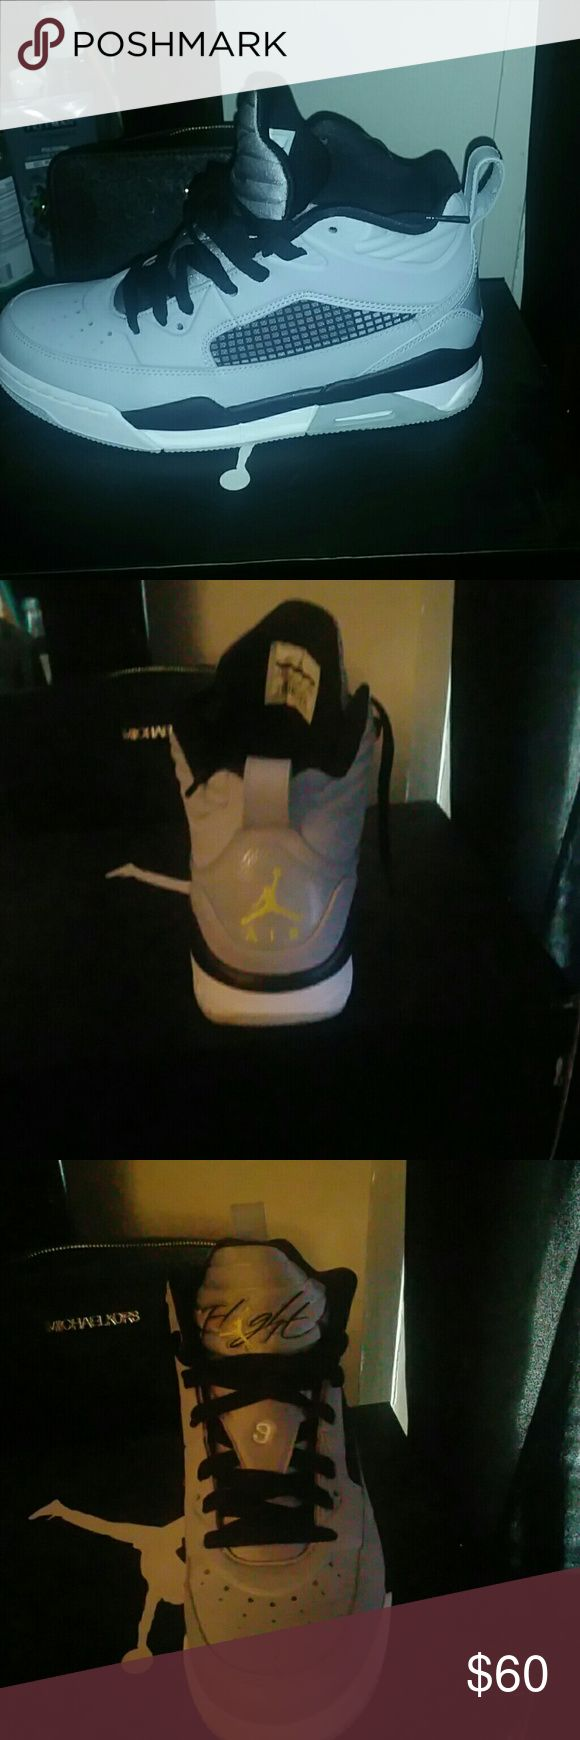 Jordan flight 9.5 BG Kids size. ..good condition i wore them a couple of times. Jordan Shoes Sneakers